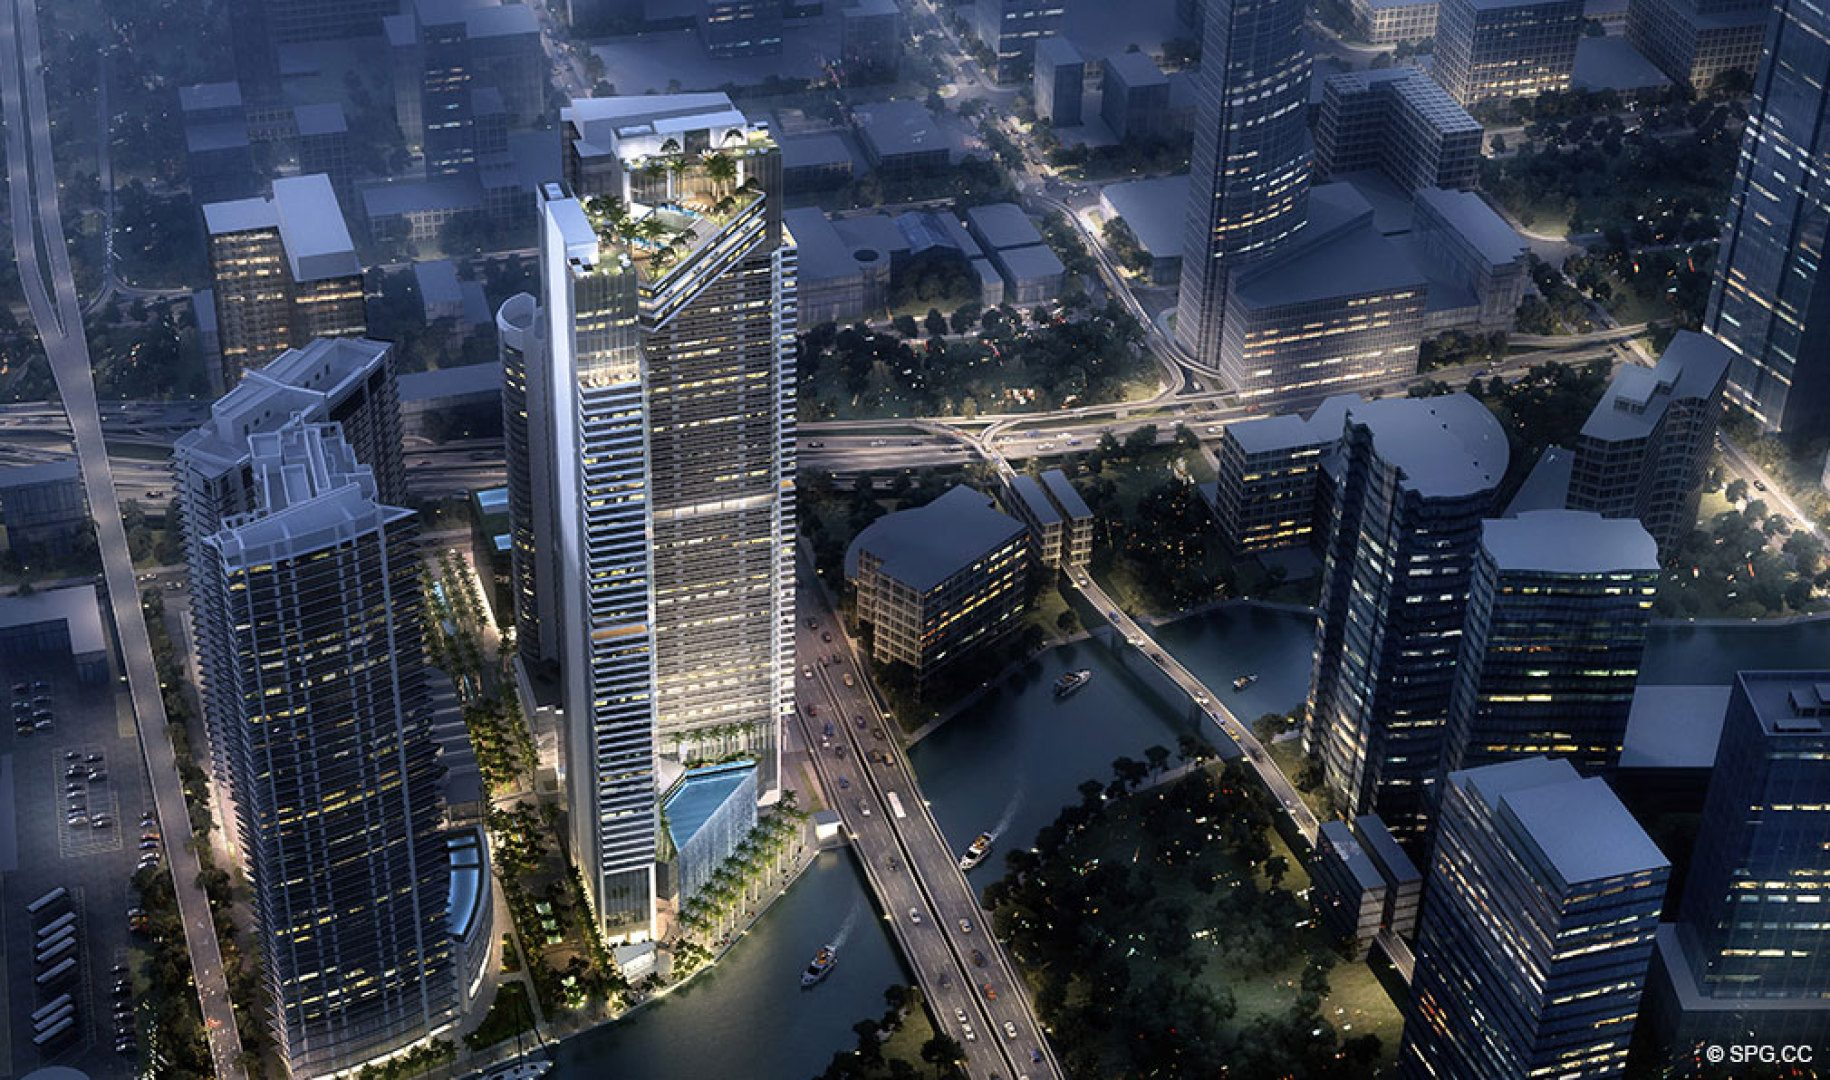 Evening Aerial Rendering of One River Point, Luxury Waterfront Condos in Miami, Florida 33130